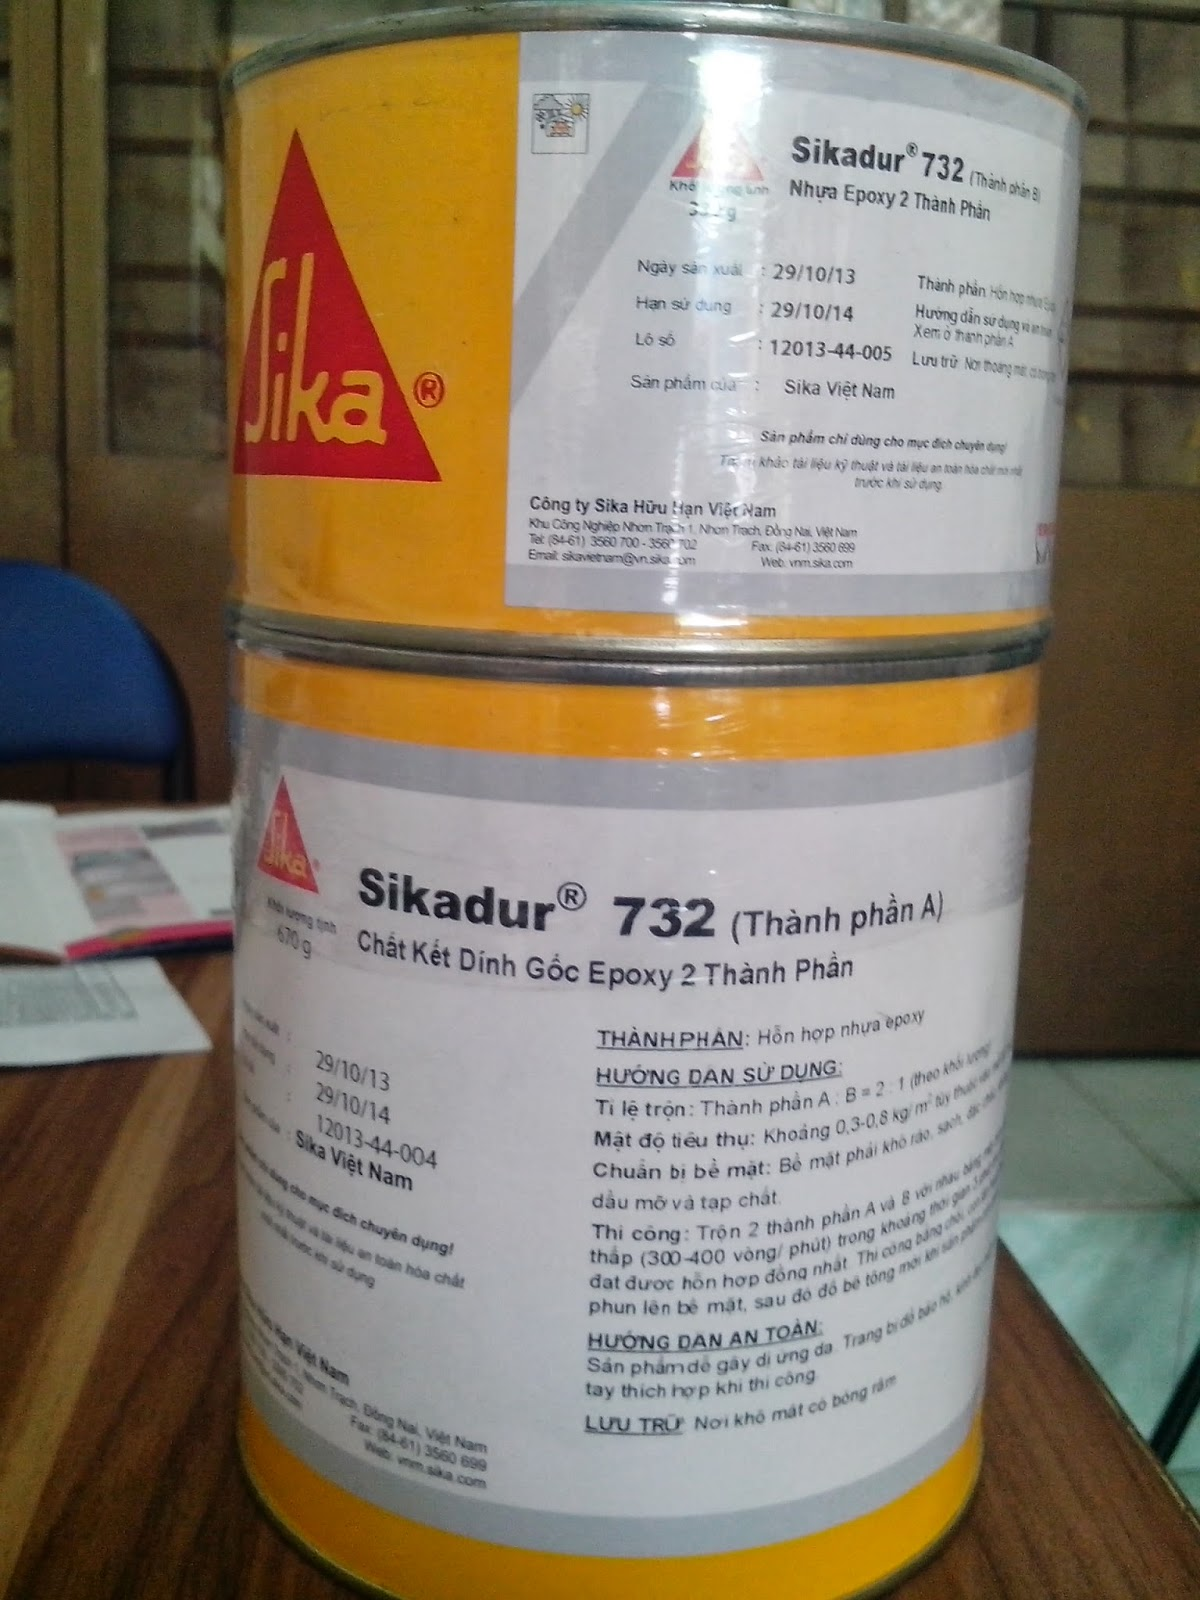 Sika Dur 732